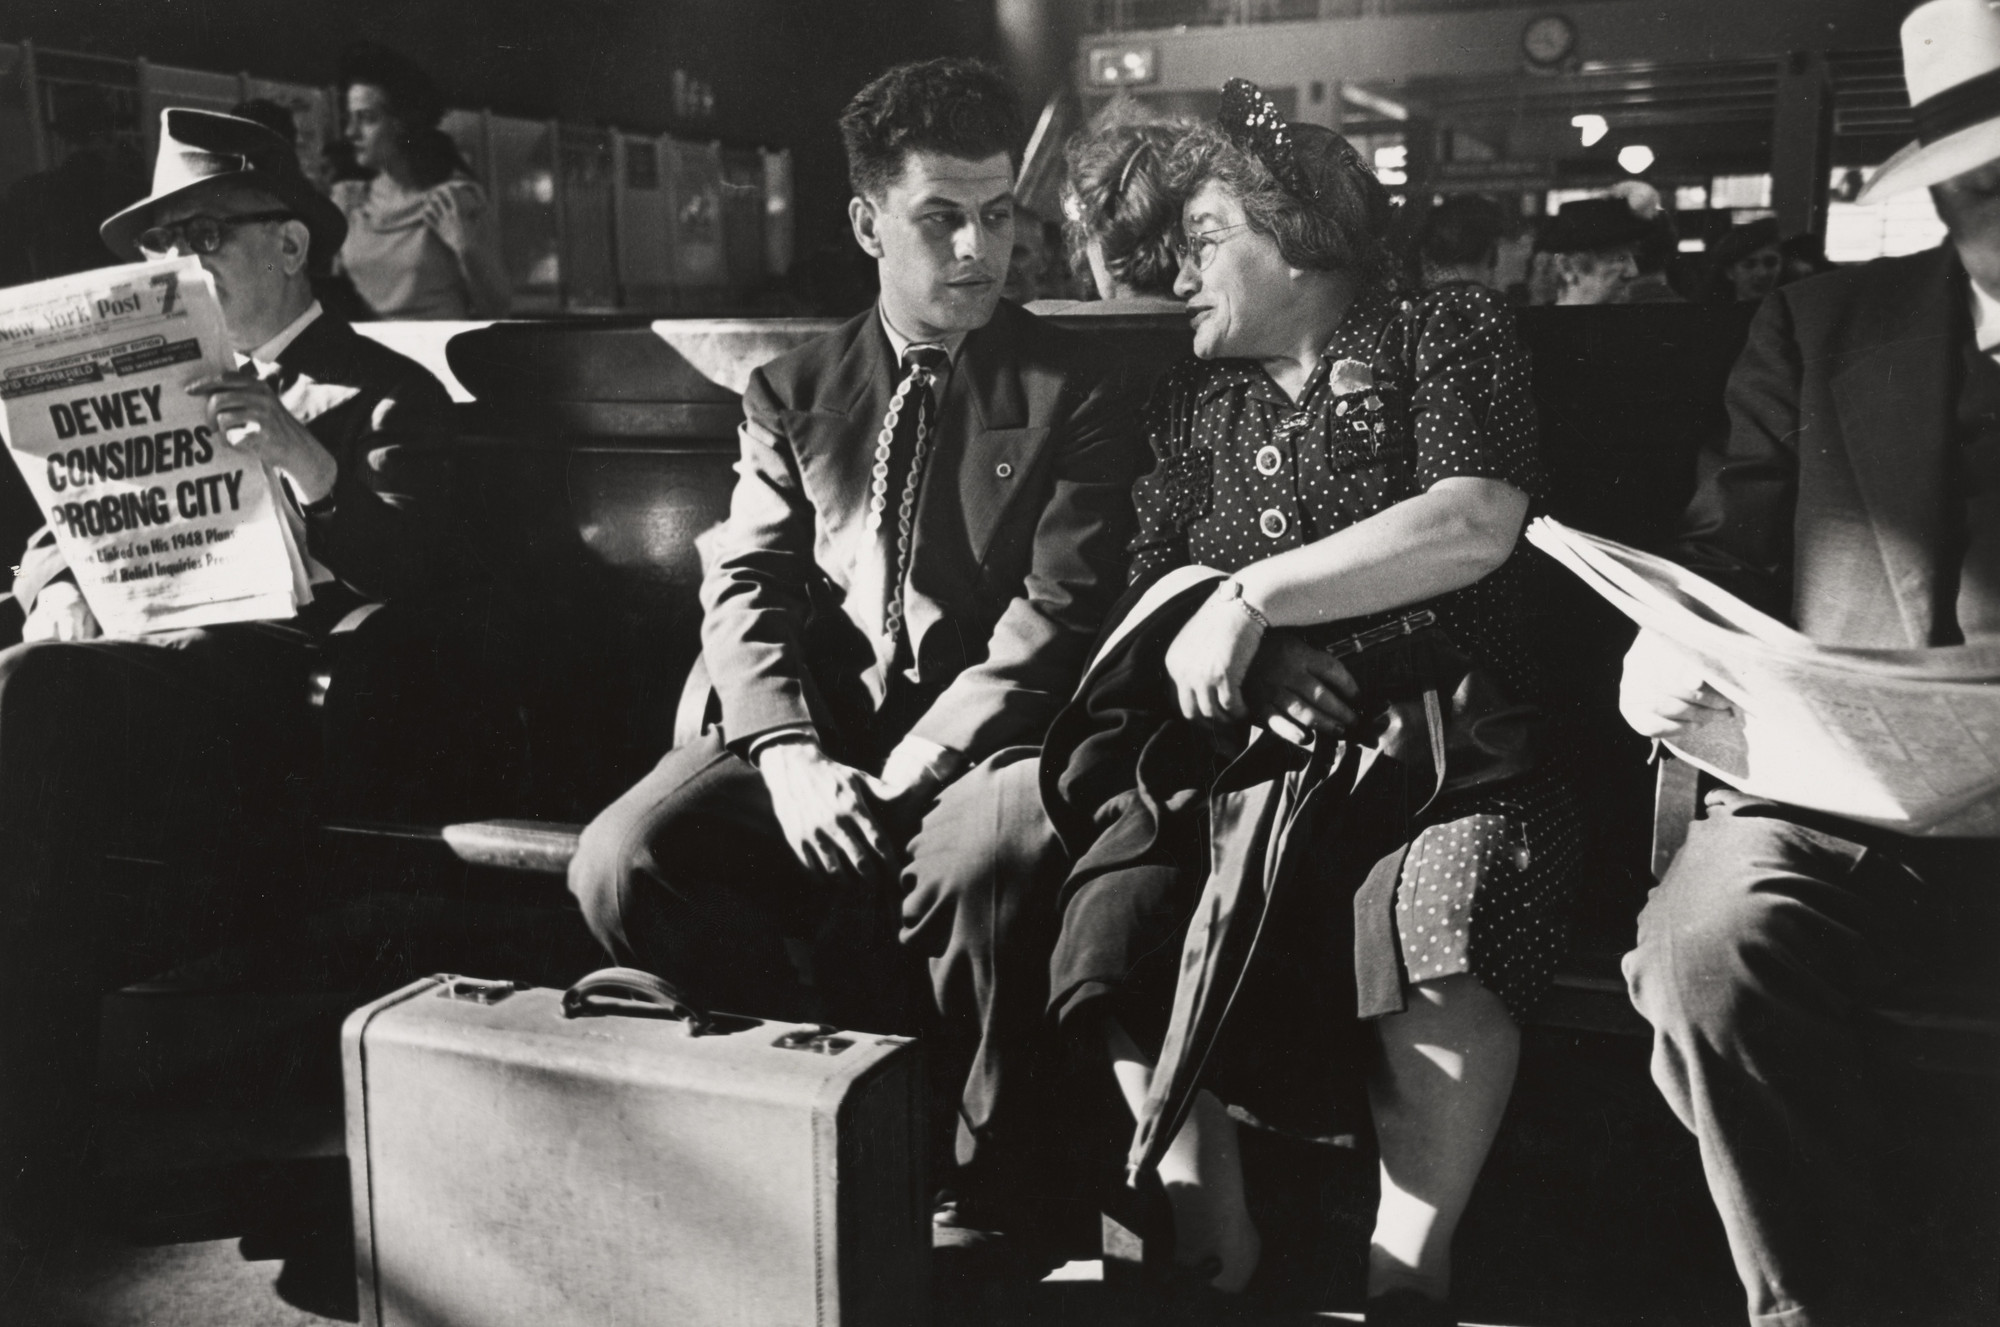 Esther Bubley. Bus Terminal, New York City. 1945